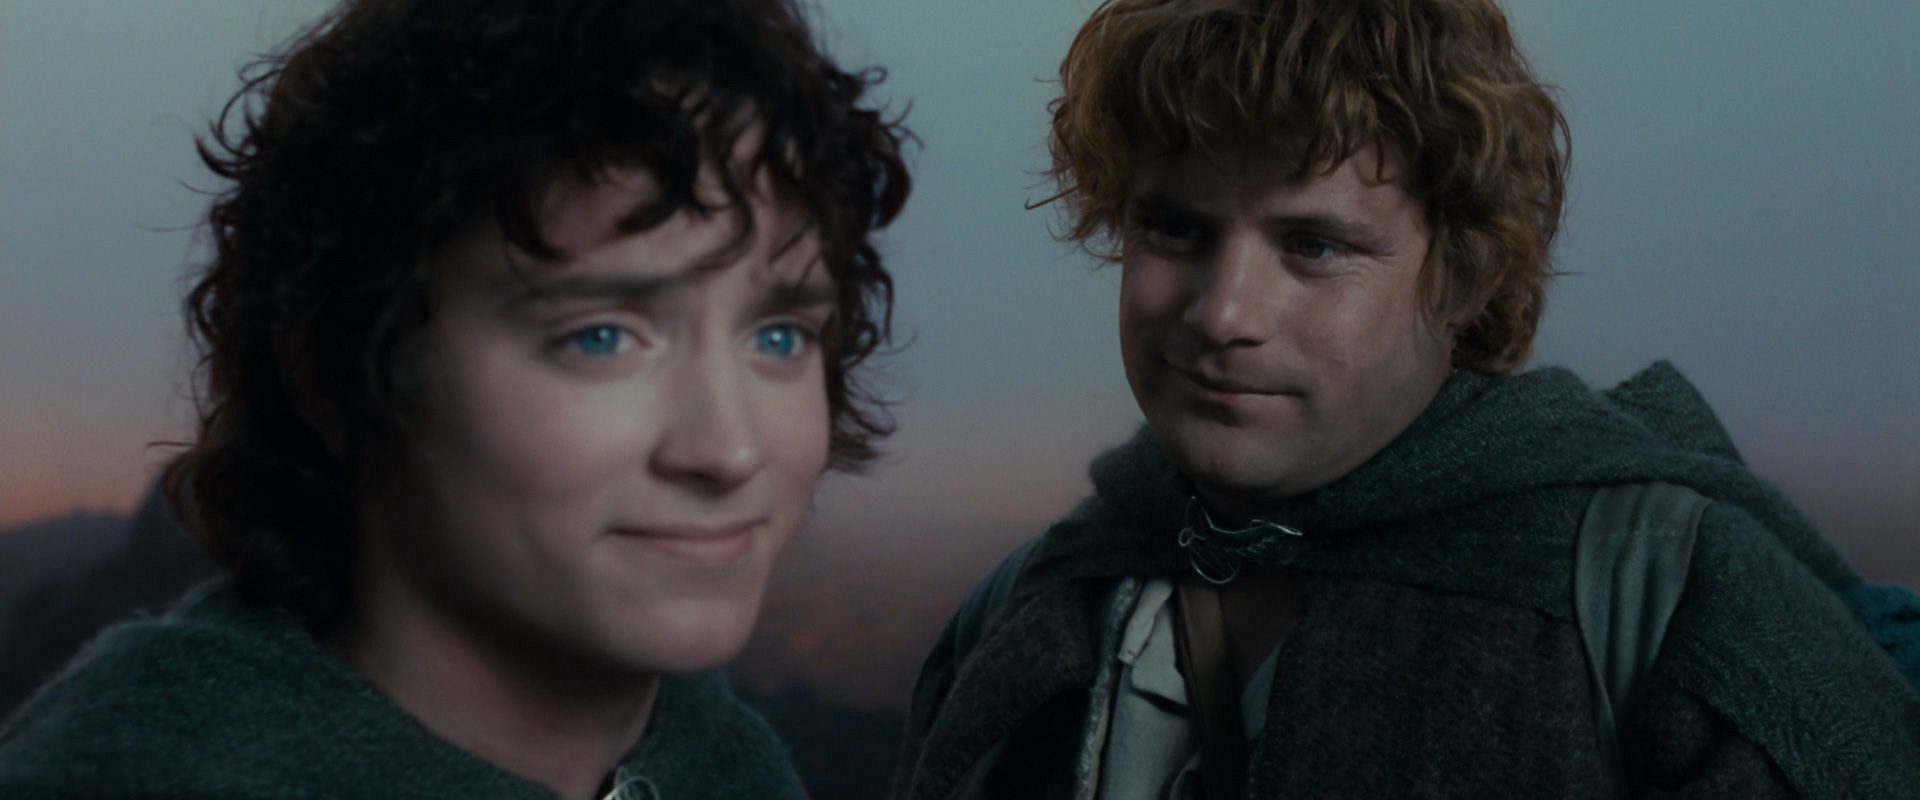 Is frodo gay